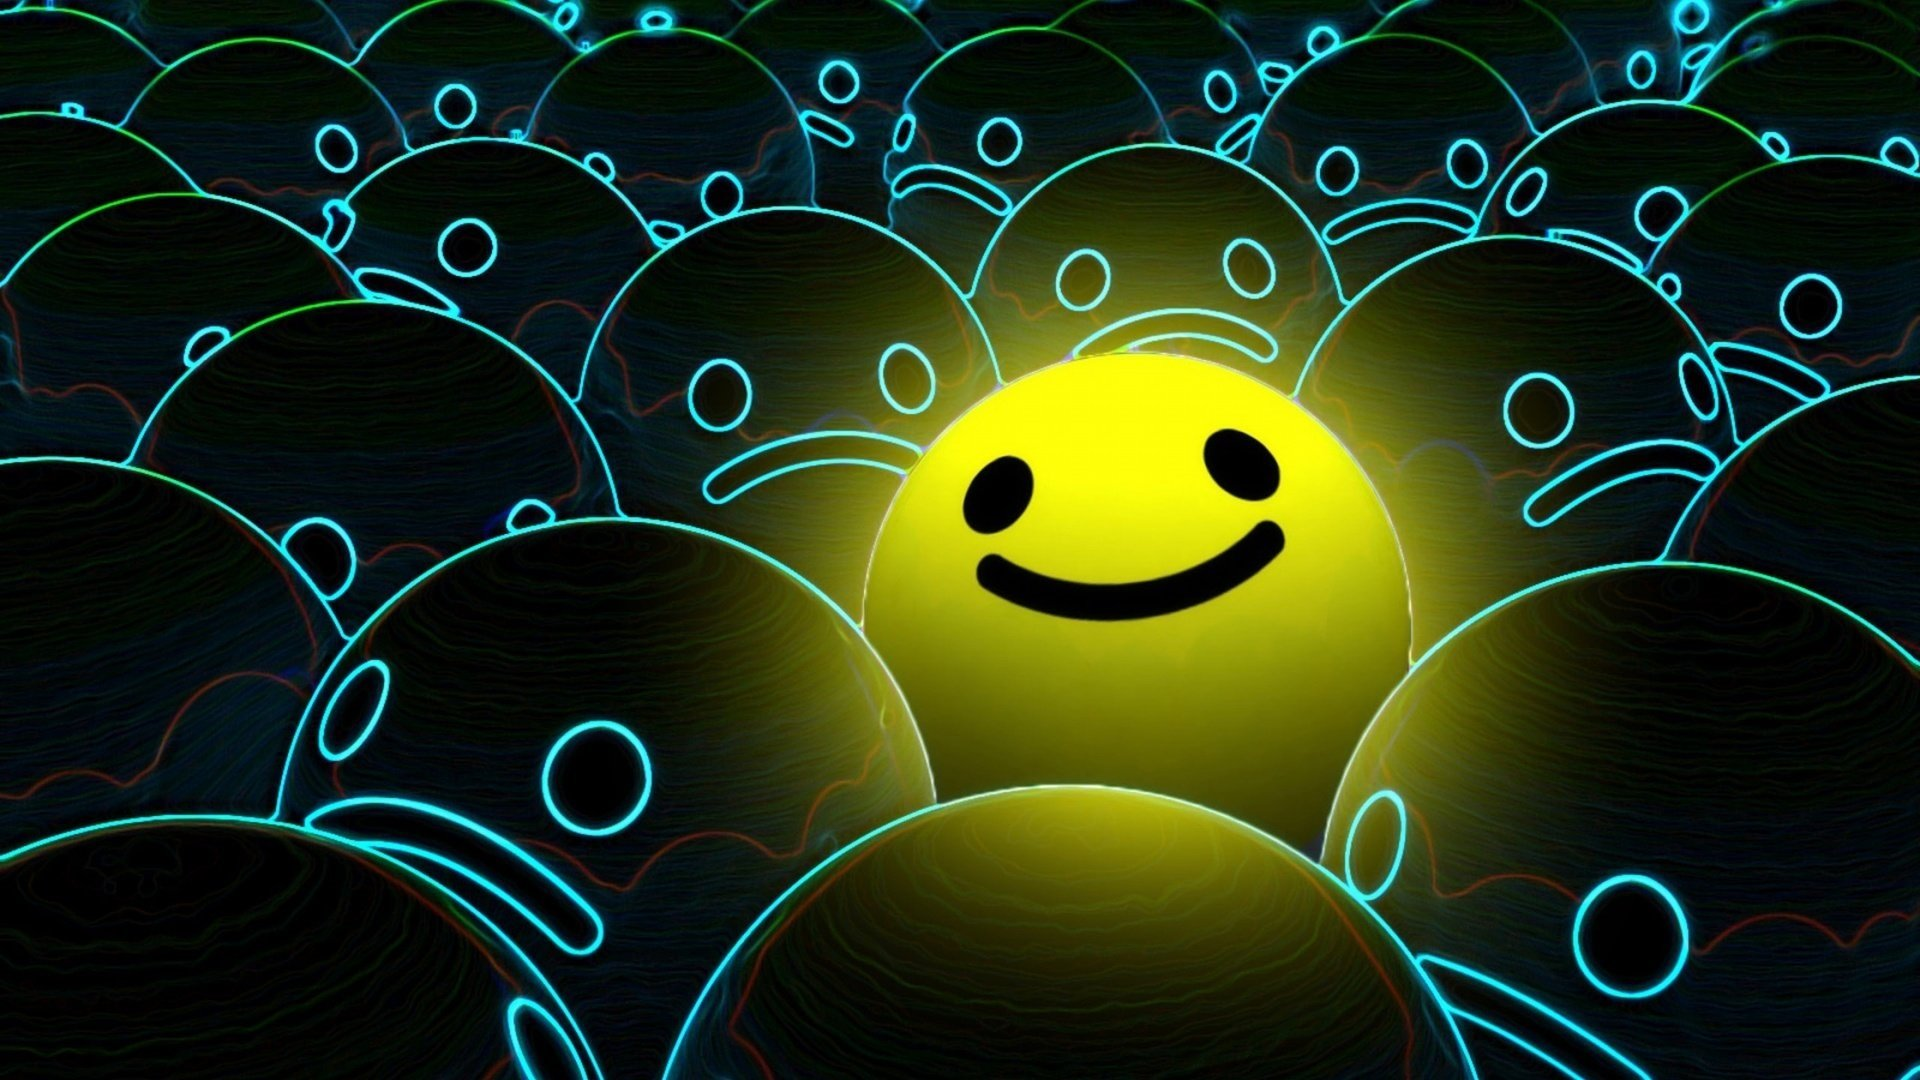 Positive Backgrounds Full HD